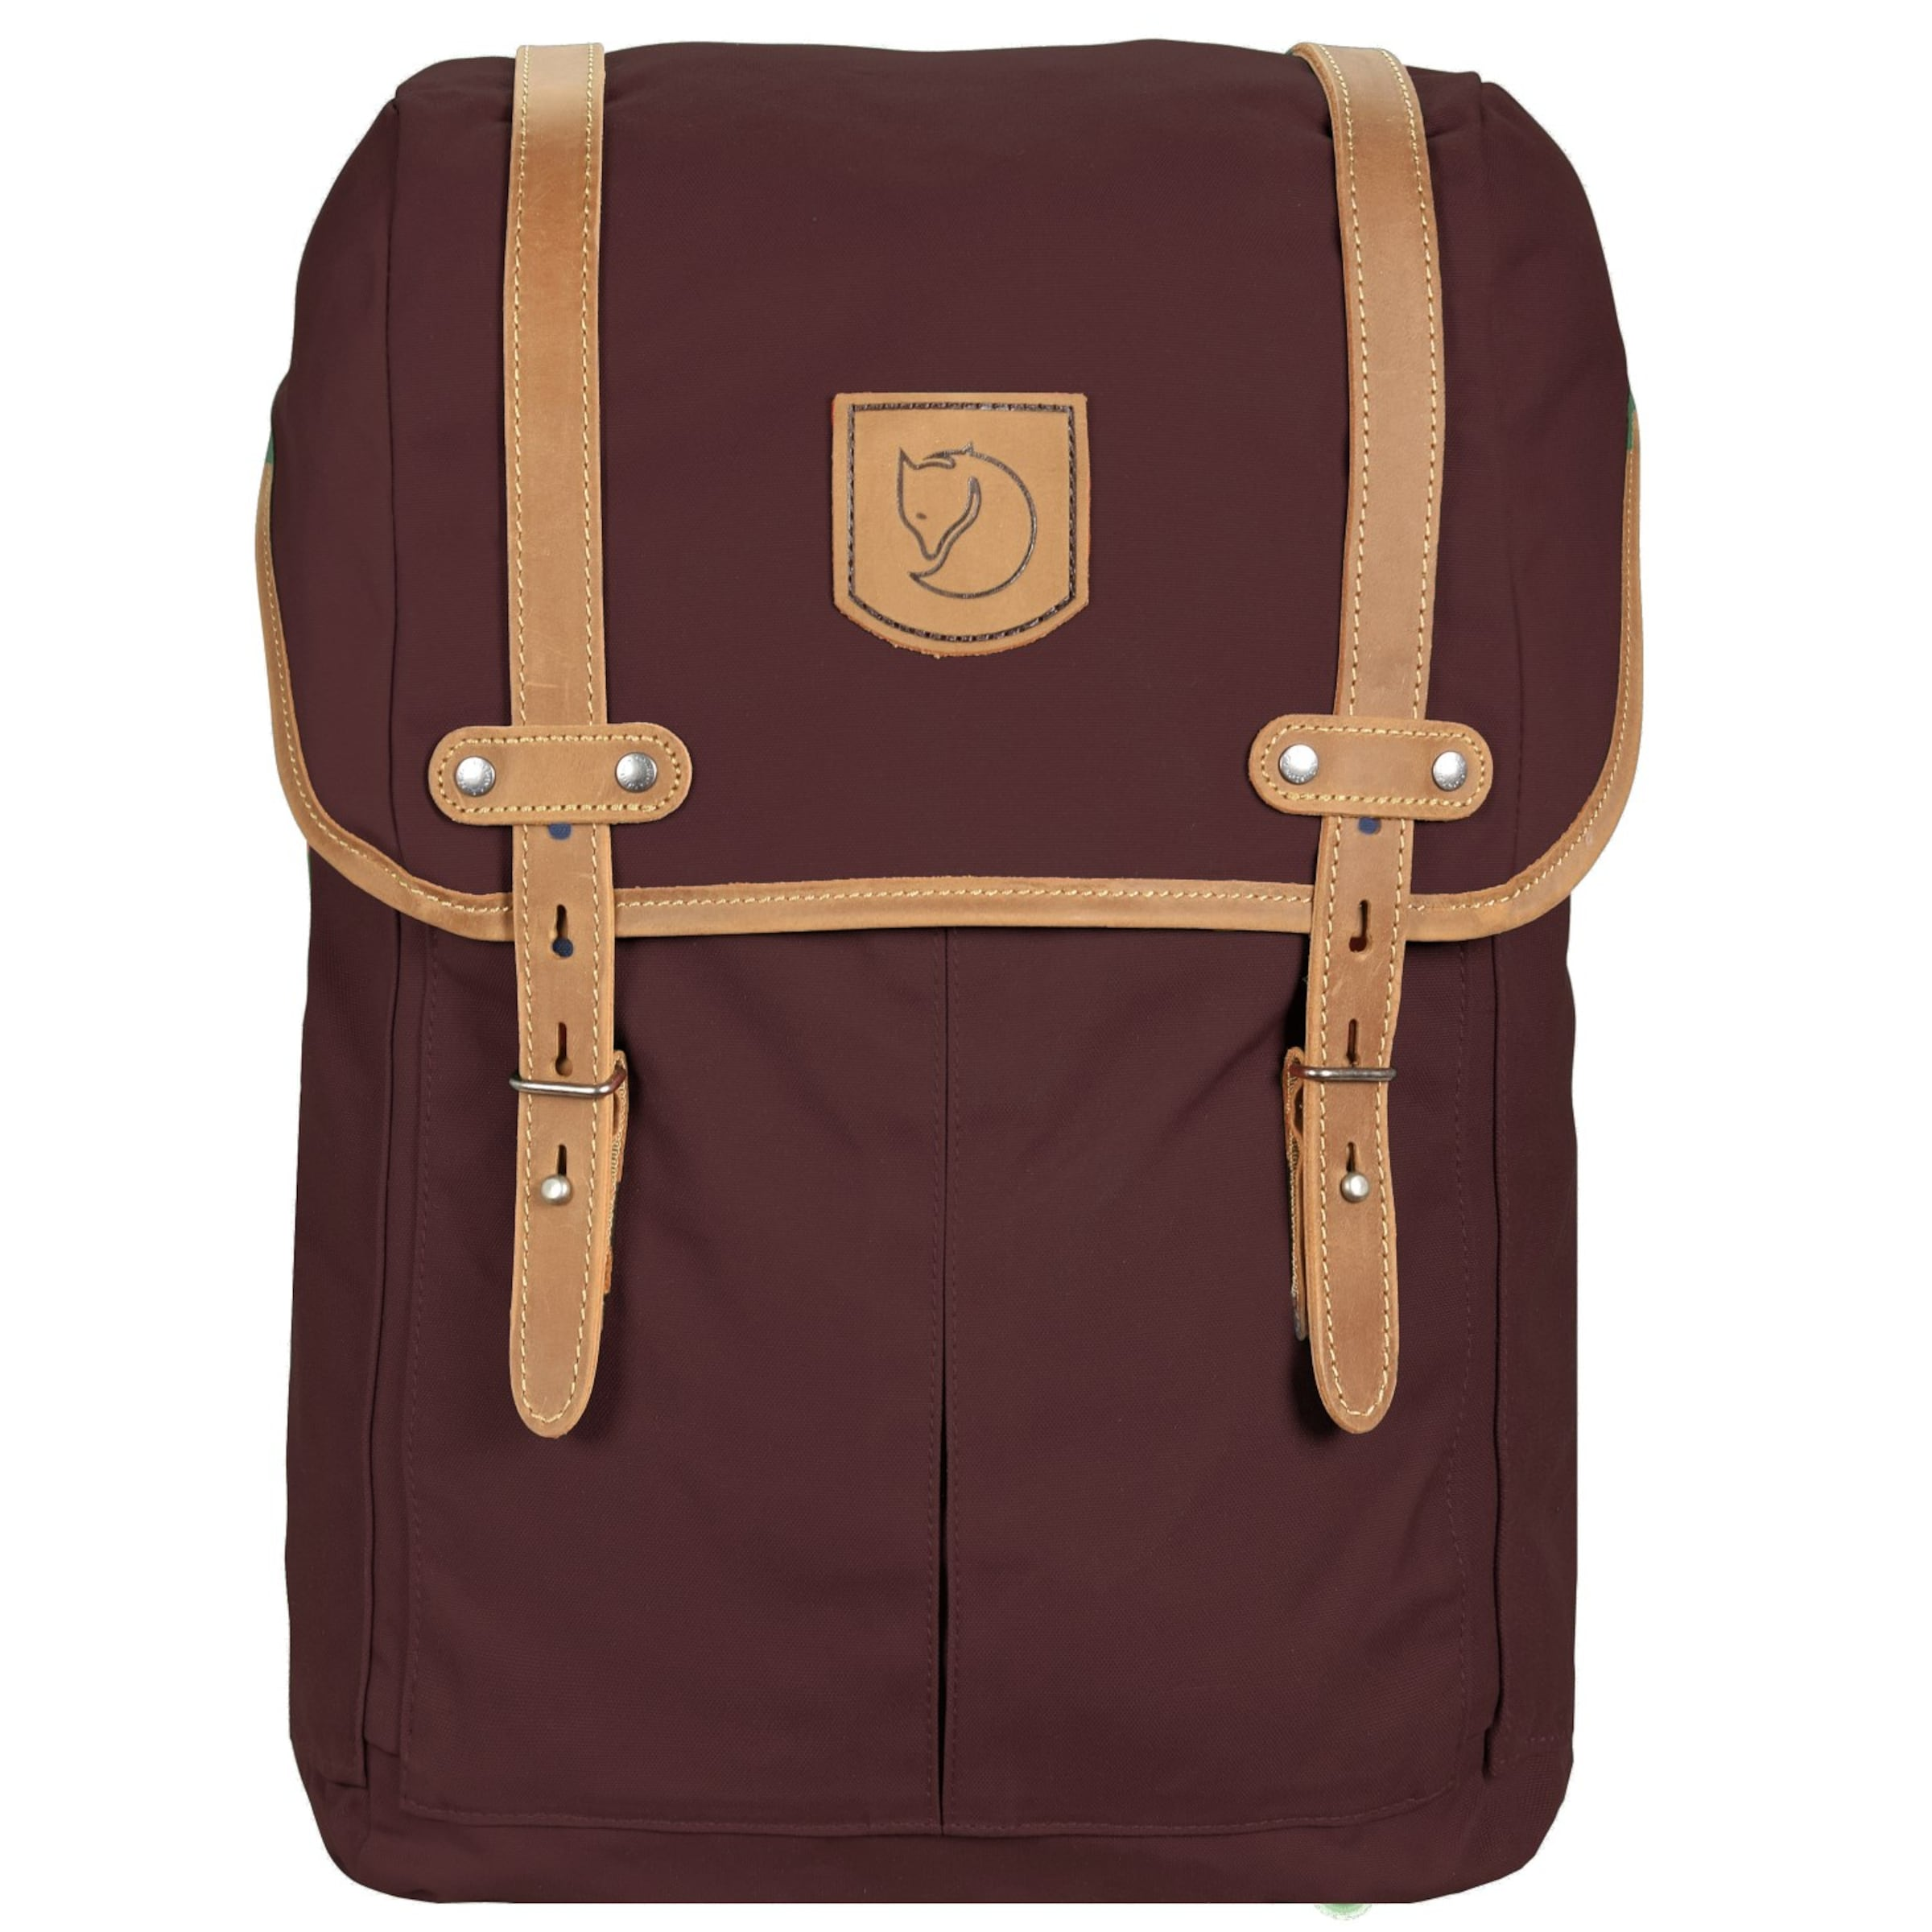 Medium Rucksack 21 Fjällräven Cm Oliv No 44 In LqjUVSGzMp